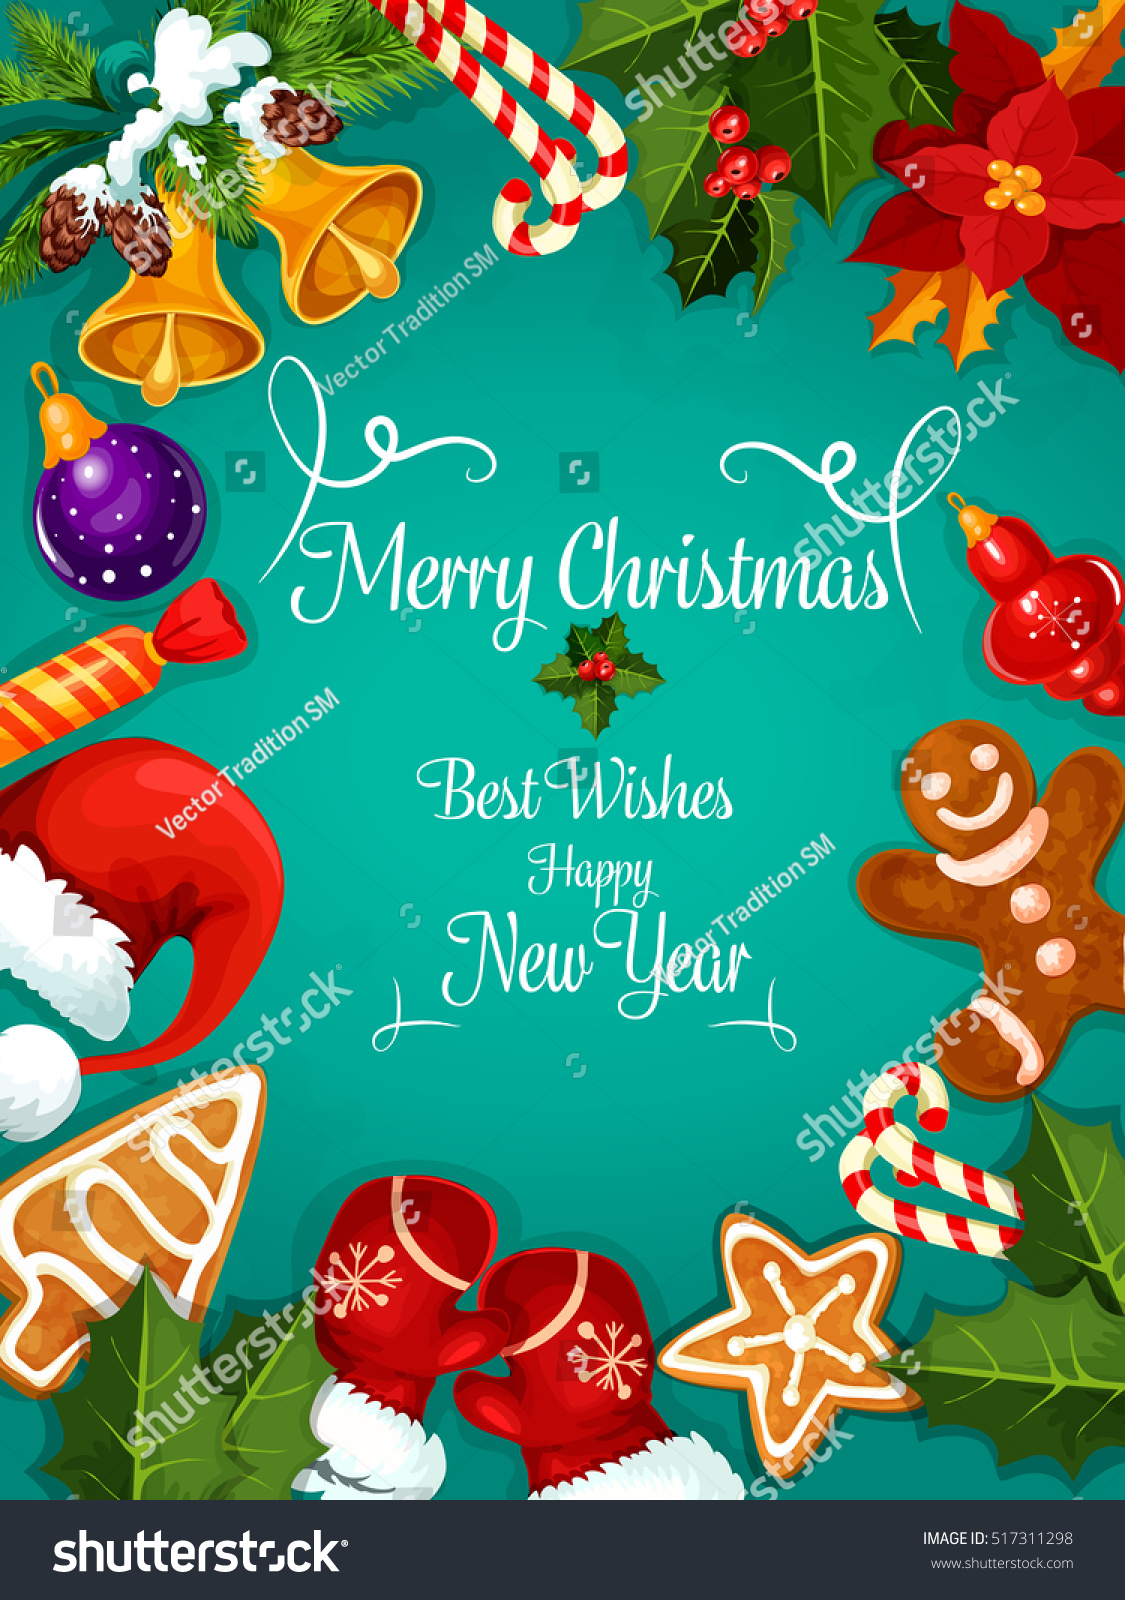 Merry Christmas New Year Greeting Card Stock Vector ...